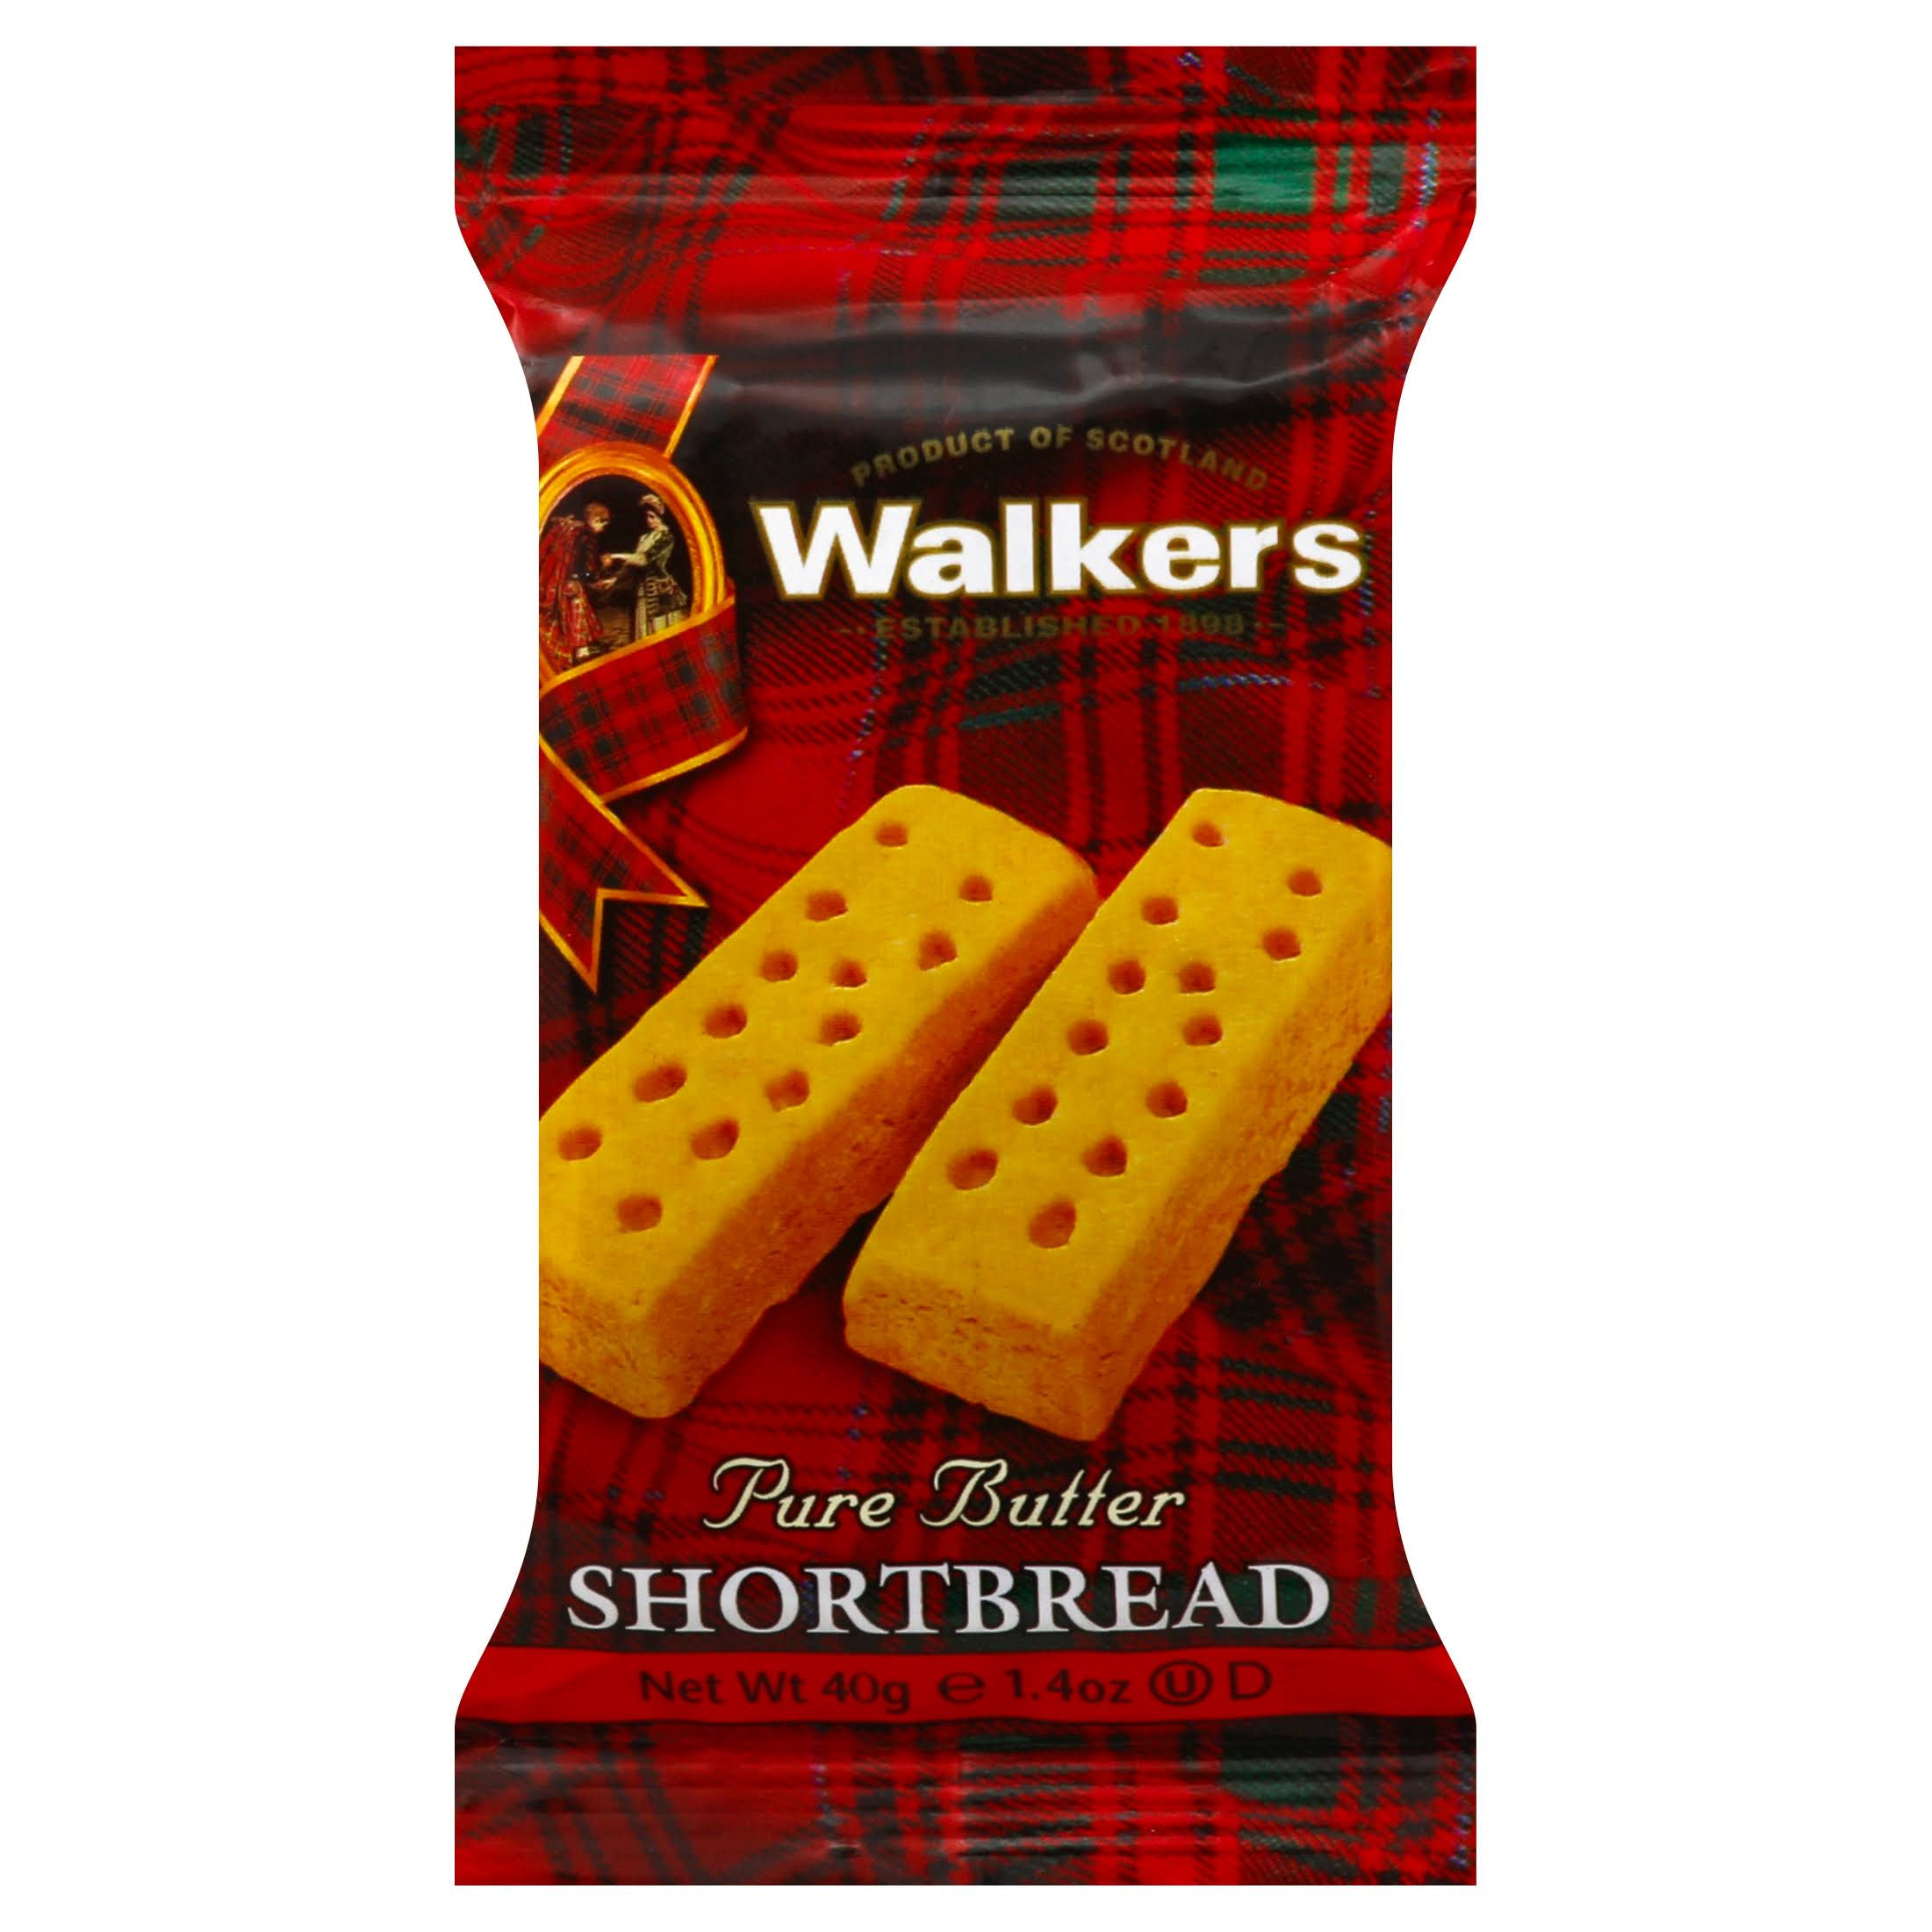 Walkers Shortbread, Pure Butter - 40 g